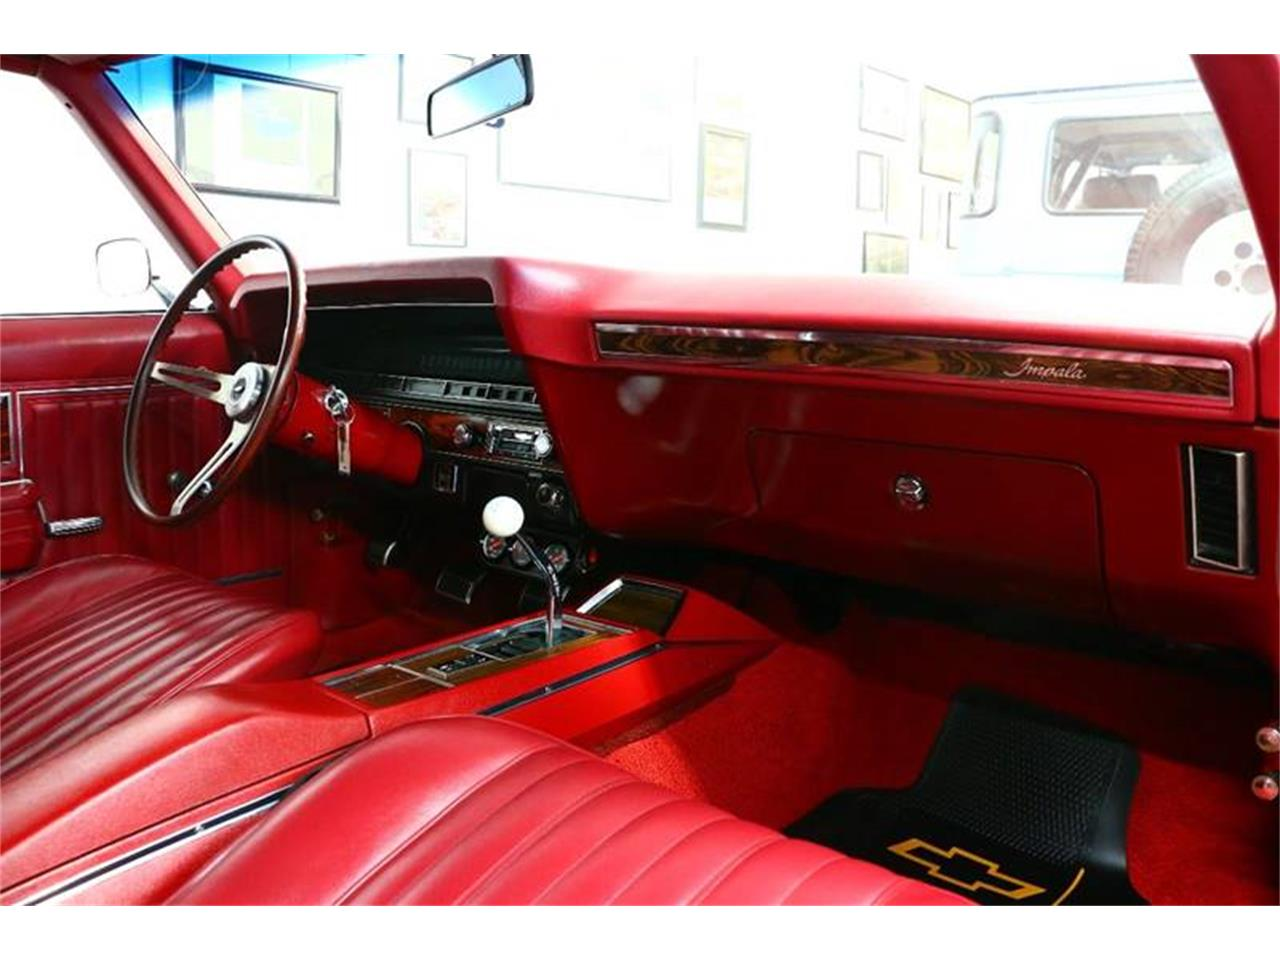 Large Picture of '69 Impala located in Wisconsin - $35,800.00 - MHAH